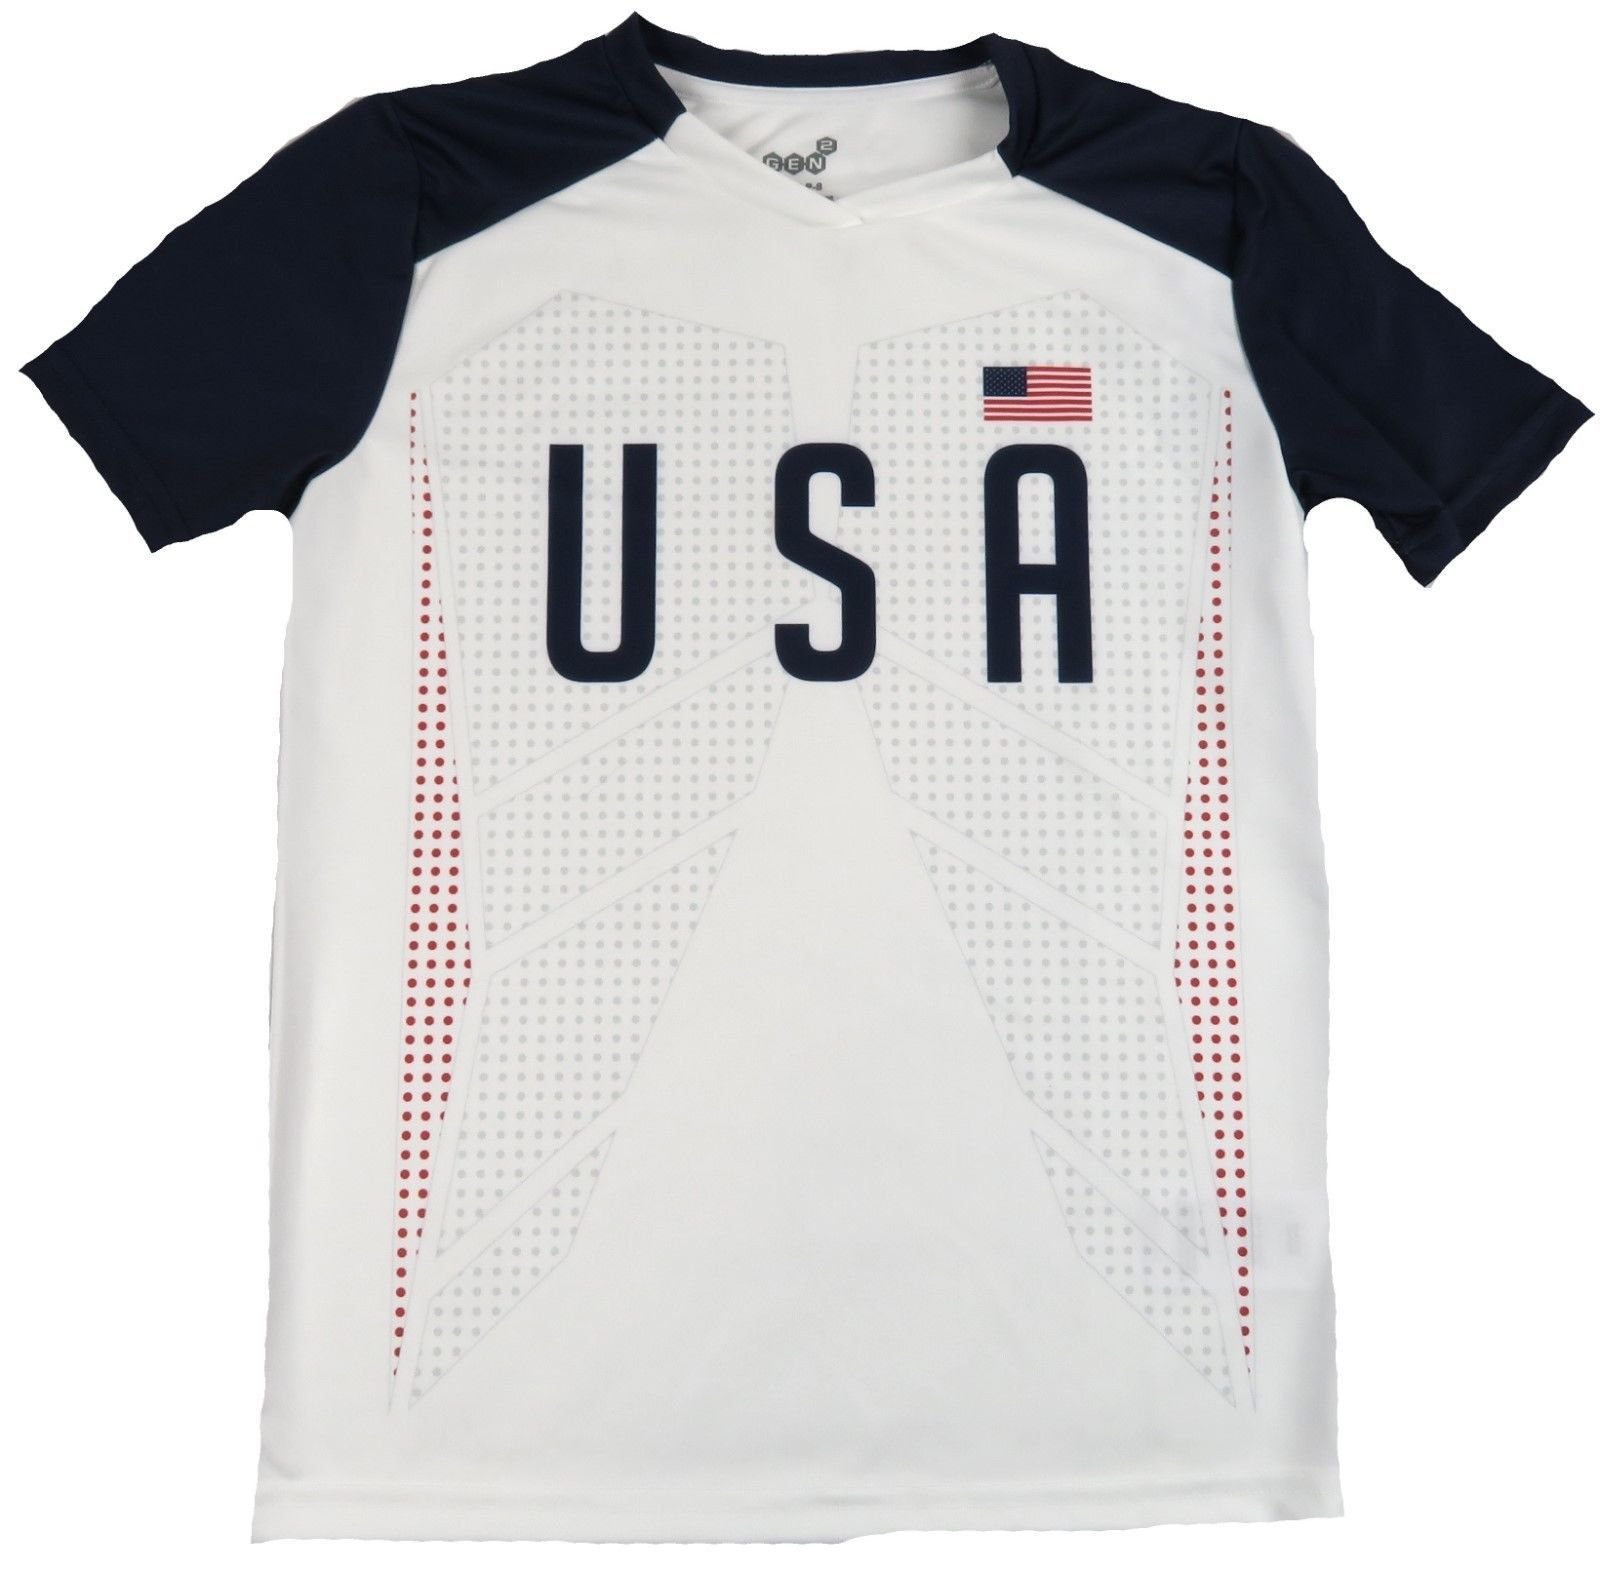 Boy's USA Federation Soccer Jersey Shirt Team U.S.A. Performance Tee Youth